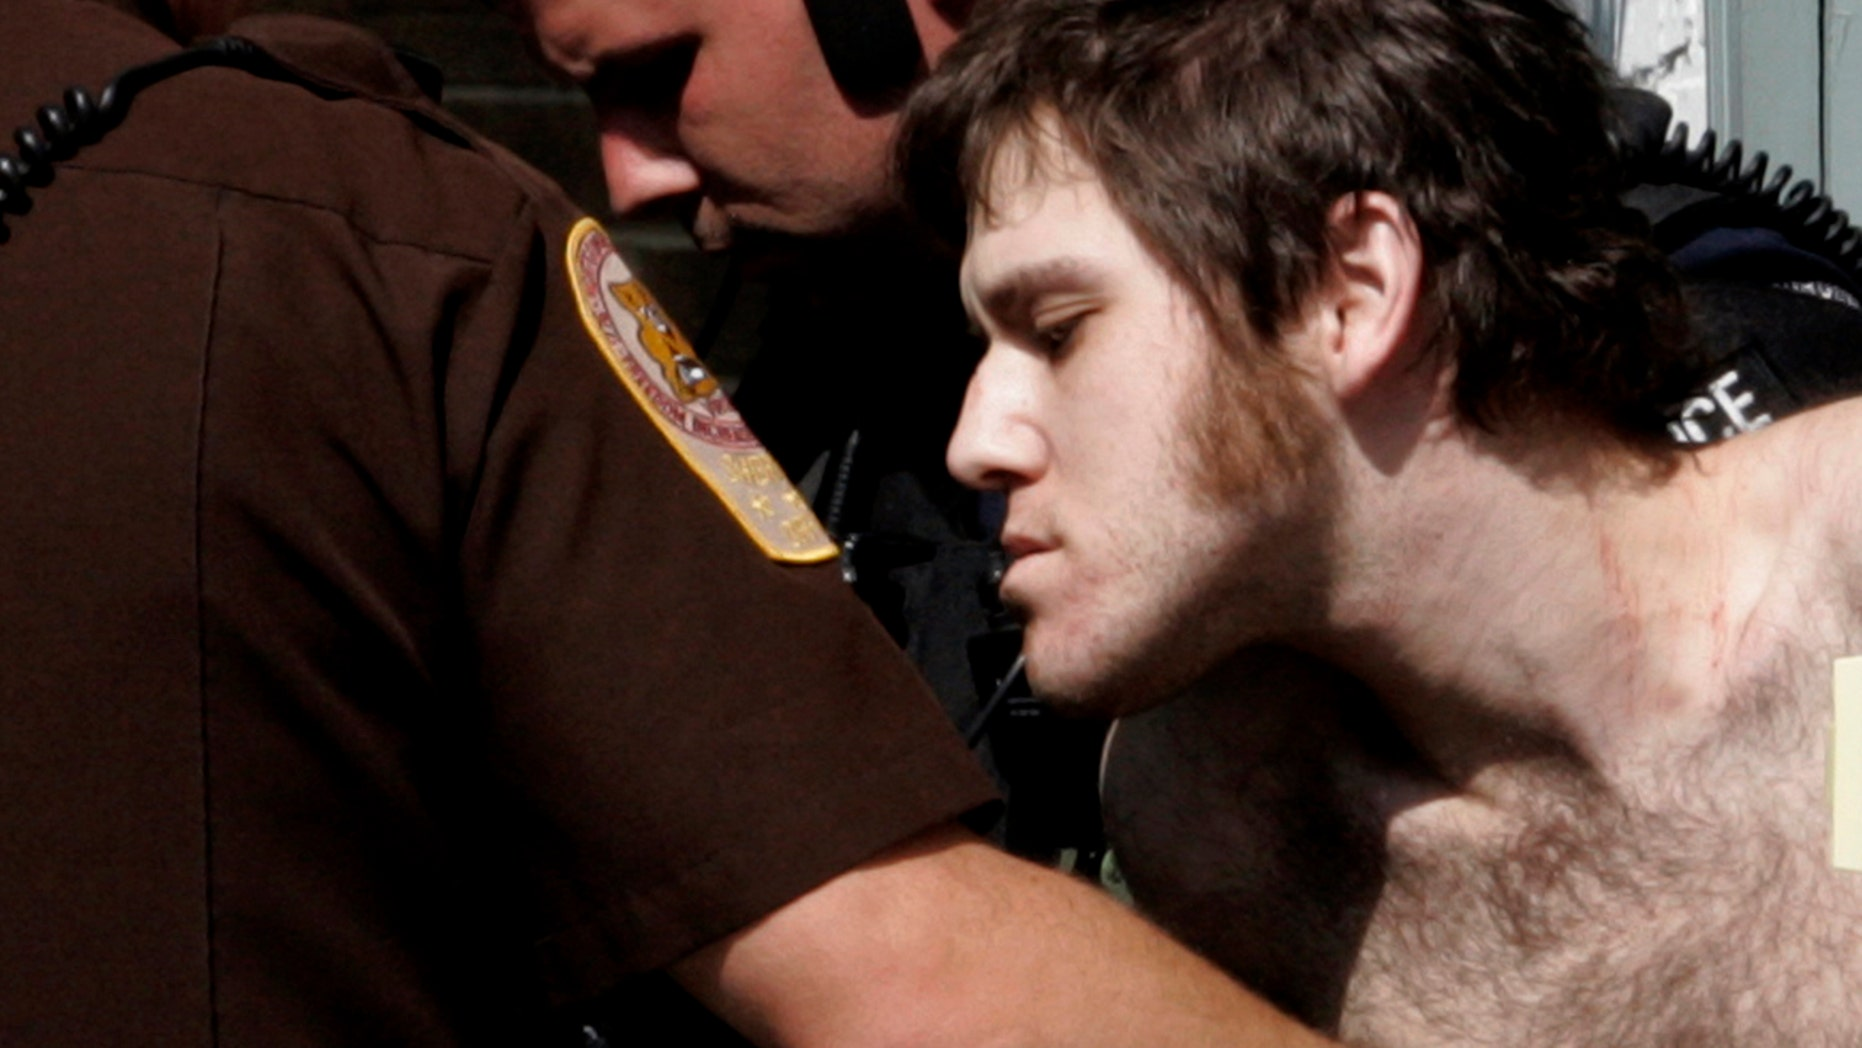 FILE: William Morva, is escorted out of the Montgomery County magistrates office after his capture in Christiansburg, Va.